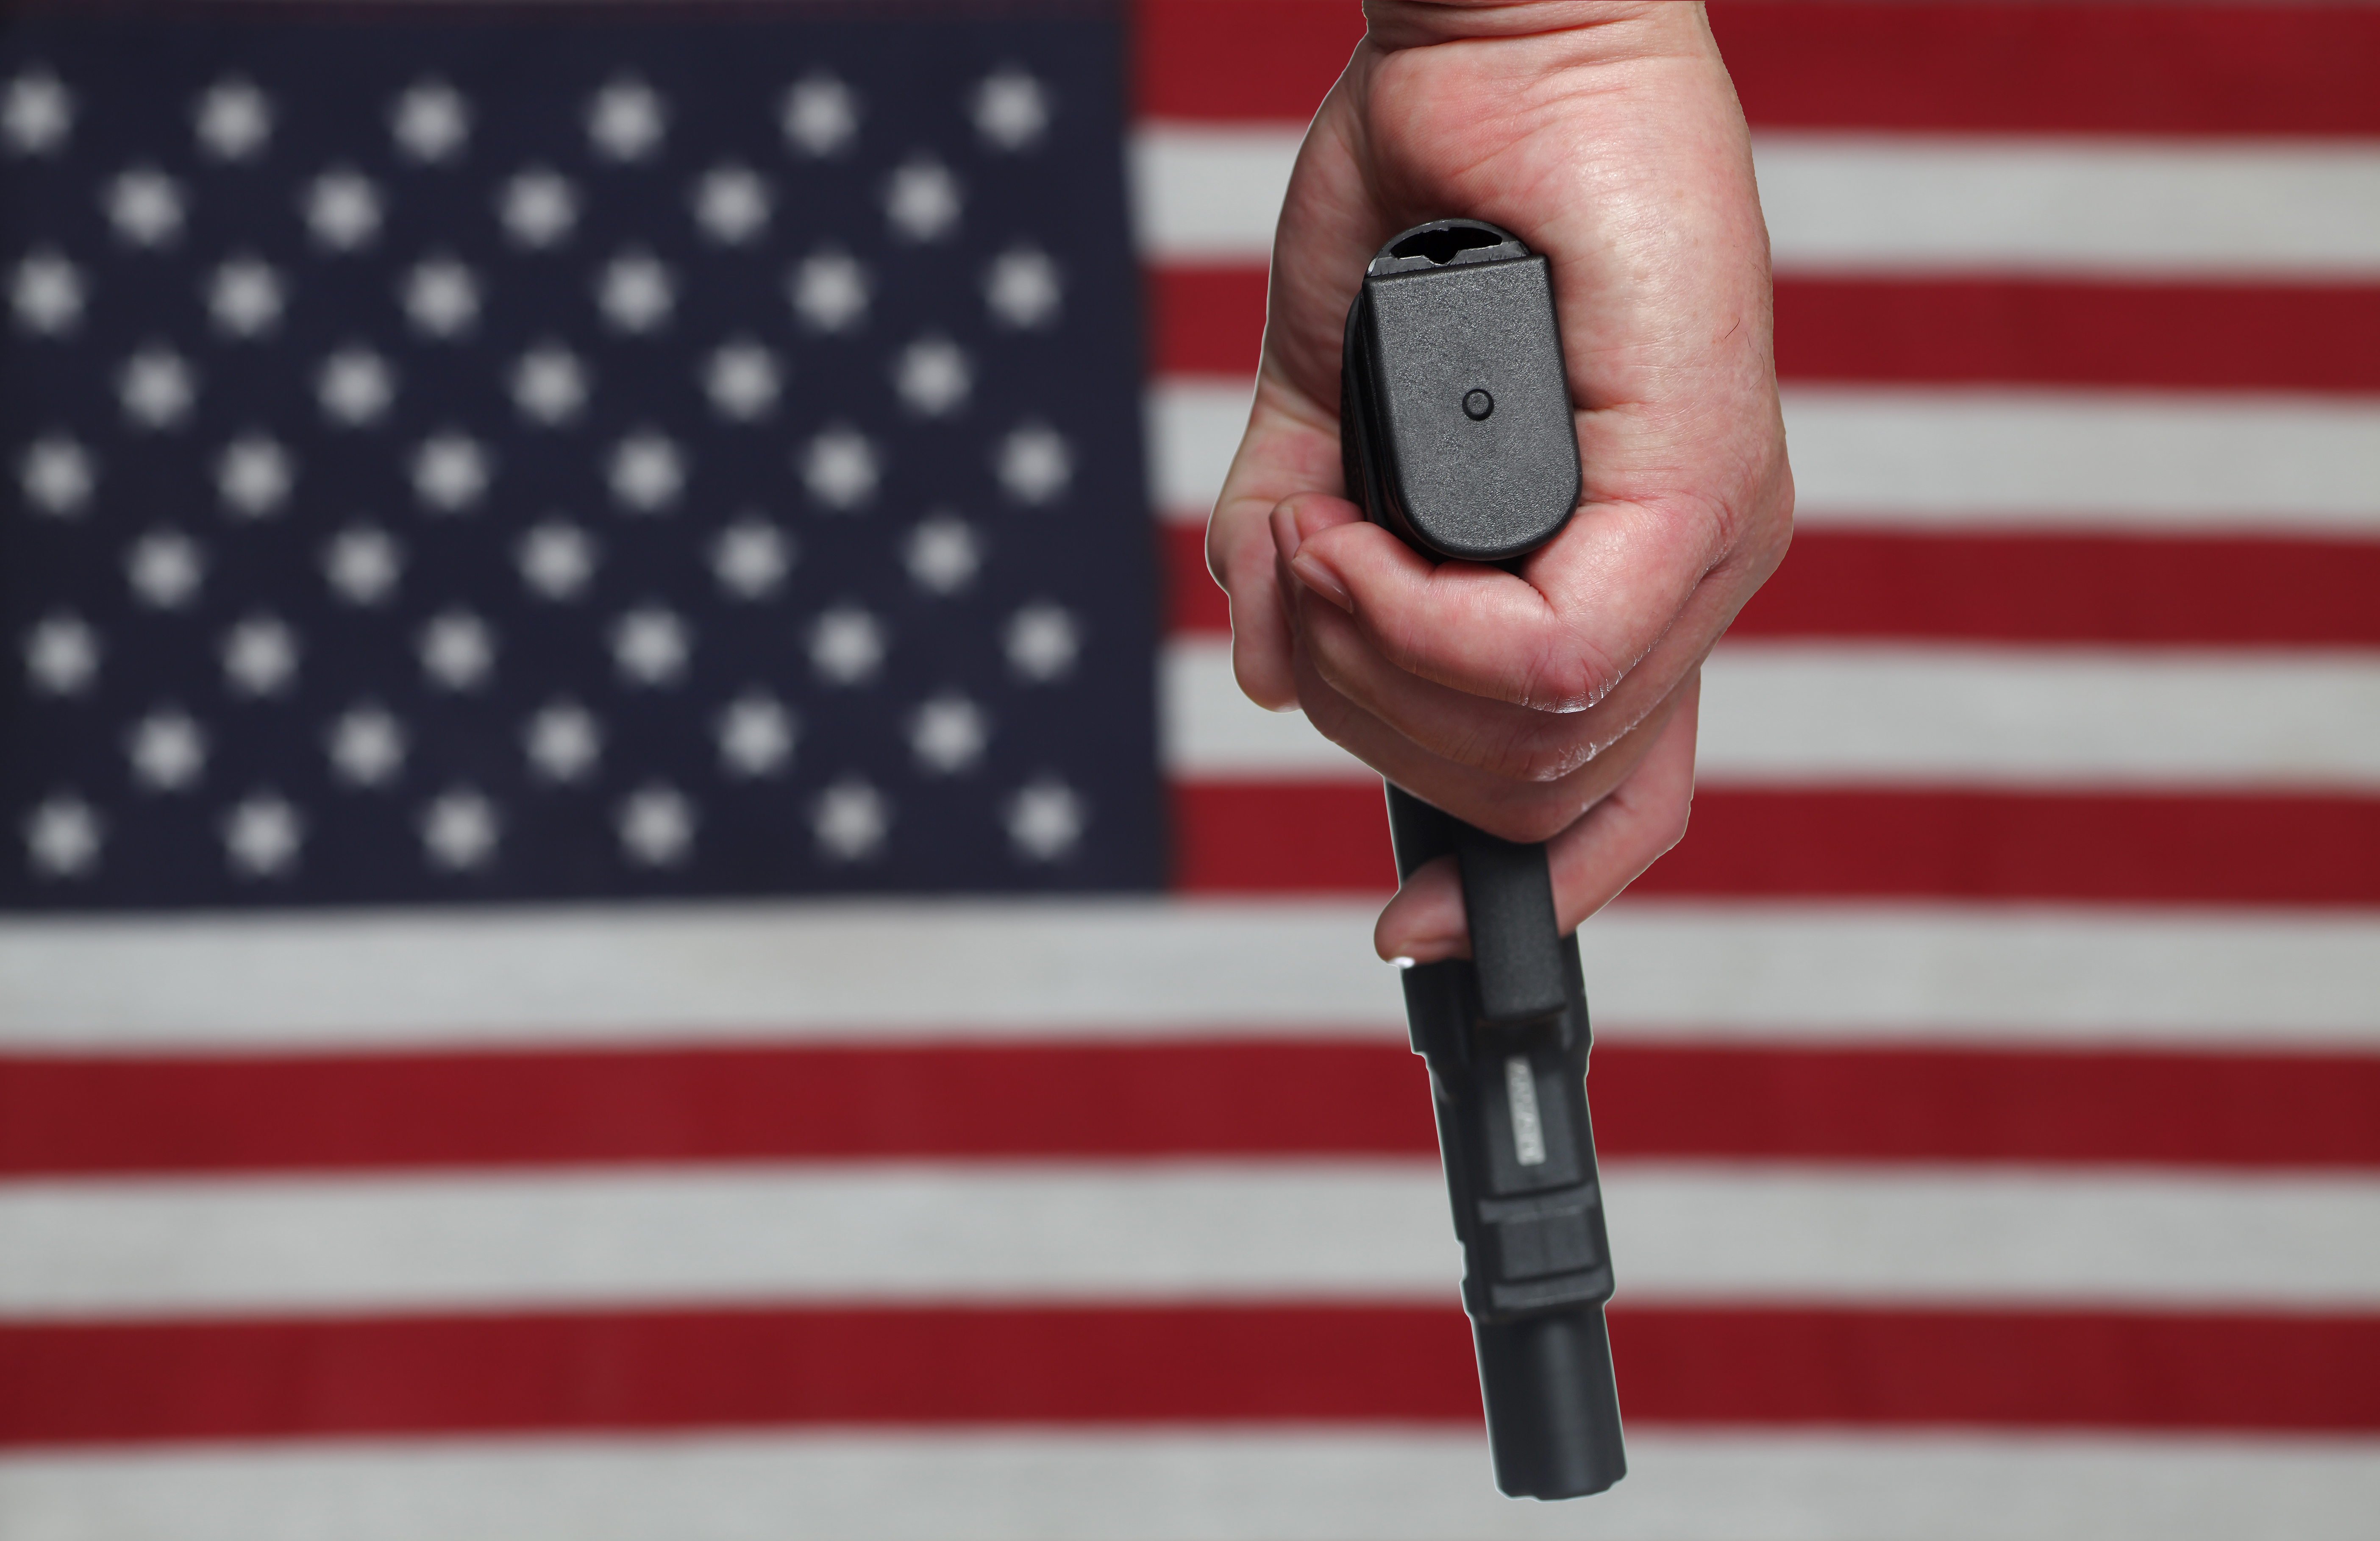 There have been 263 days in 2018 — and 262 mass shootings in America